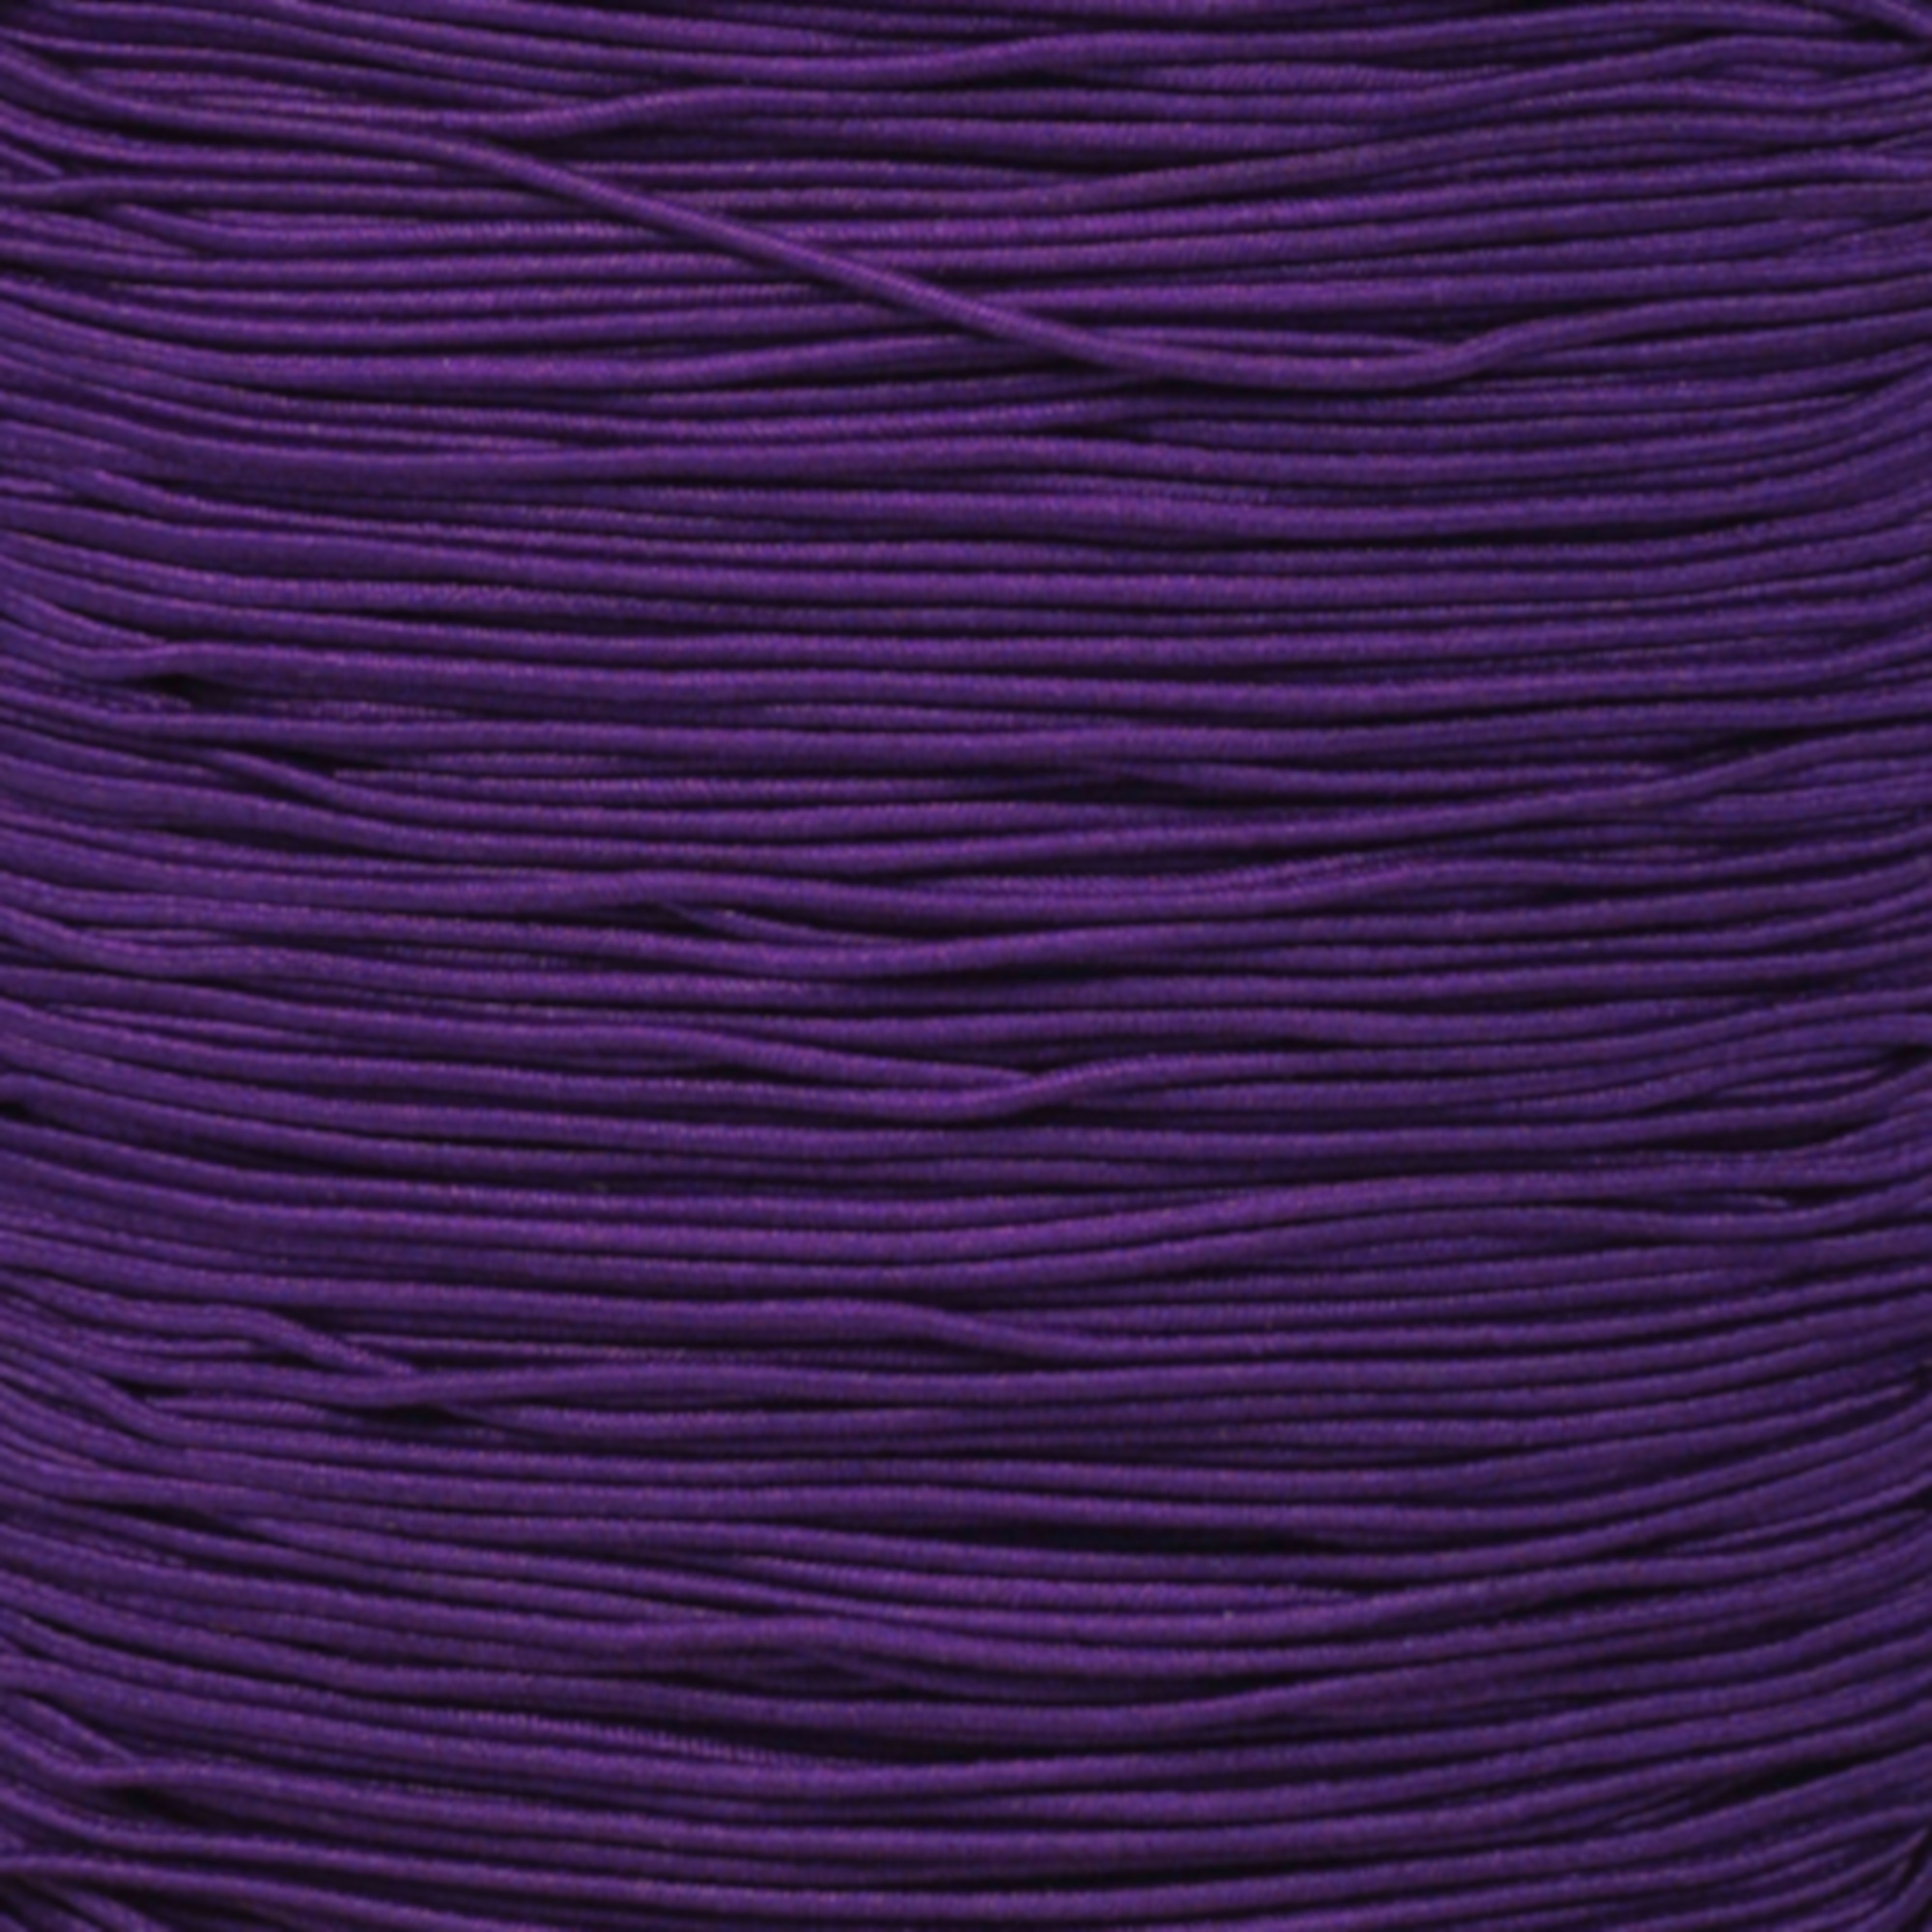 Paracord Planet 1/32 inch Elastic Bungee Nylon Shock Cord Crafting Stretch String – Various Colors –10 25 50 & 100 Foot Lengths Made in USA